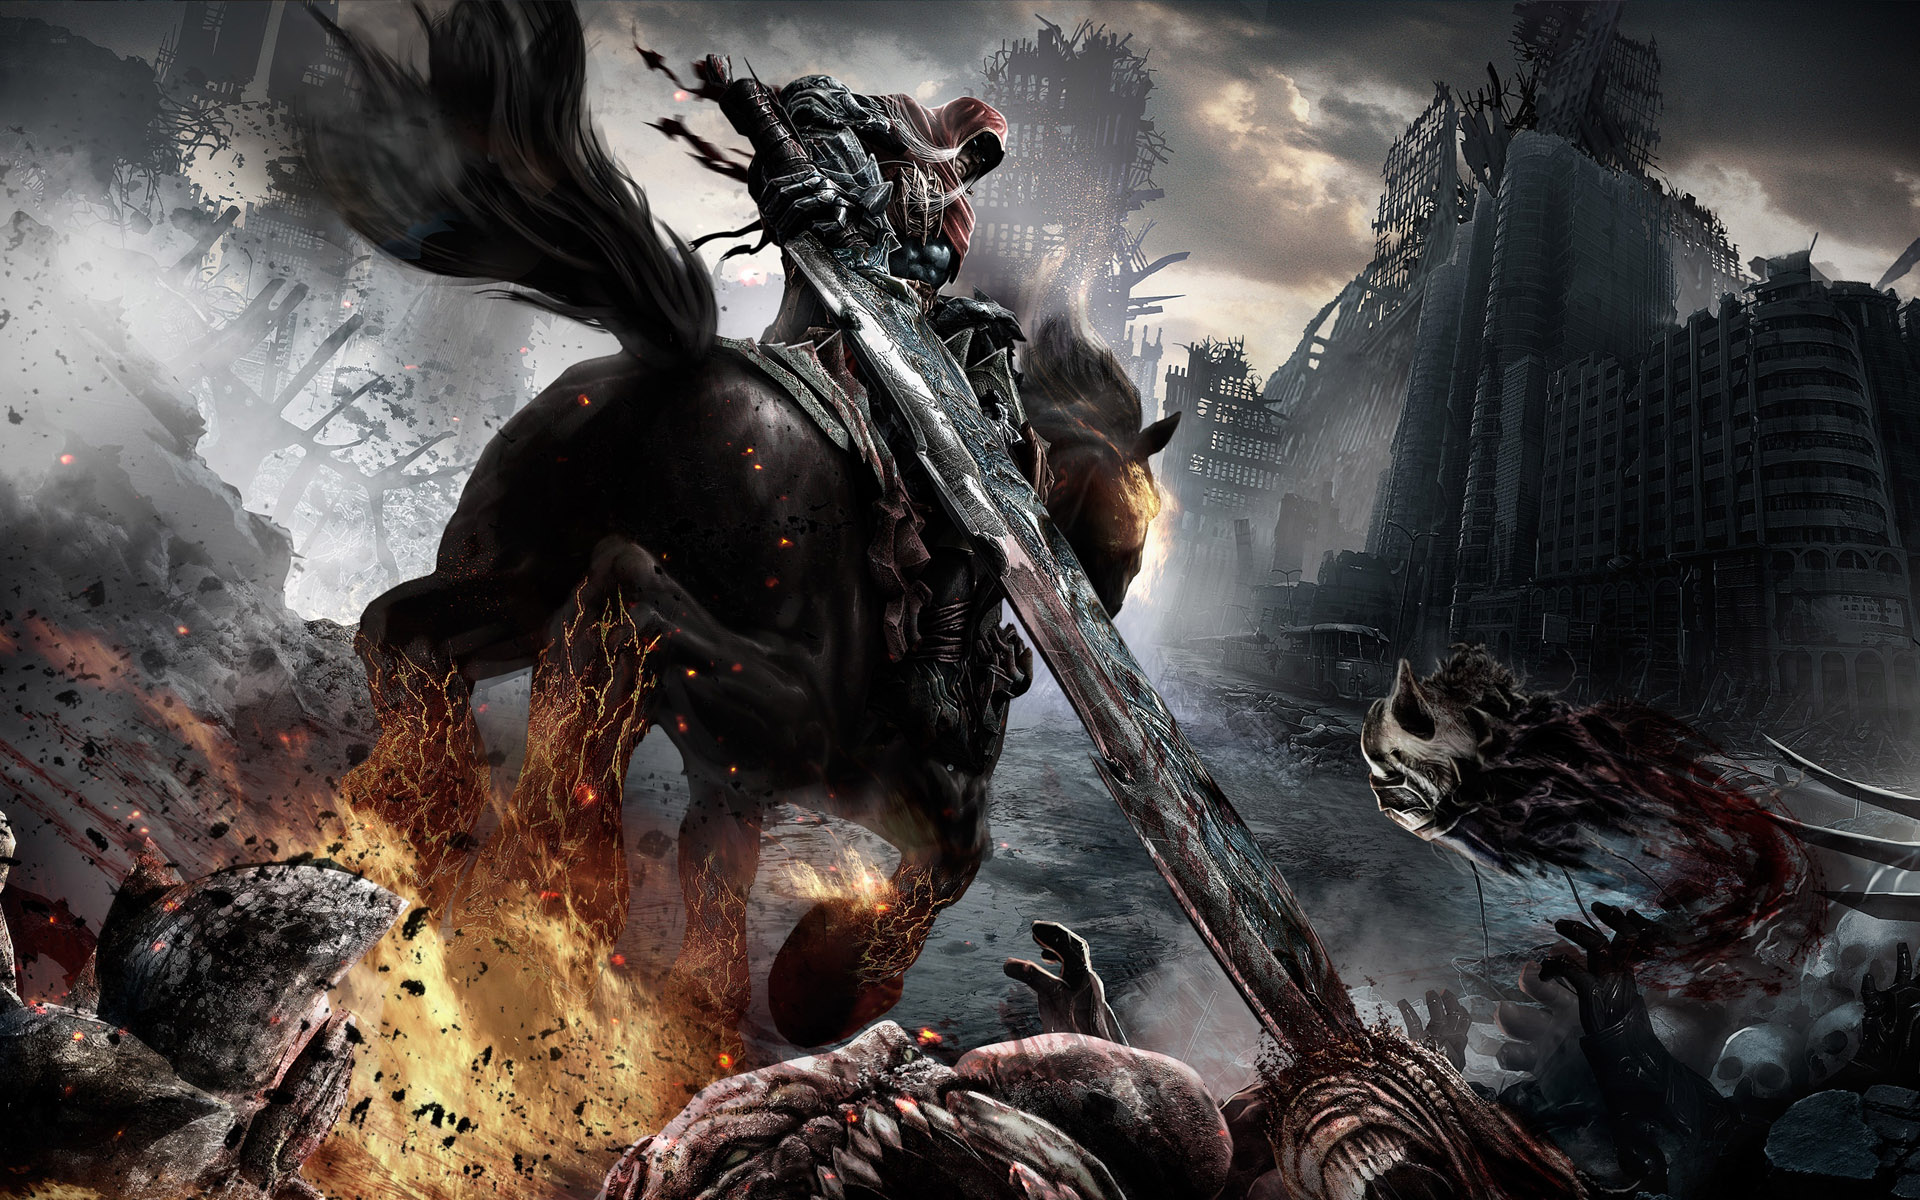 cool wallpapers images photos download Cool Gaming 1920x1200